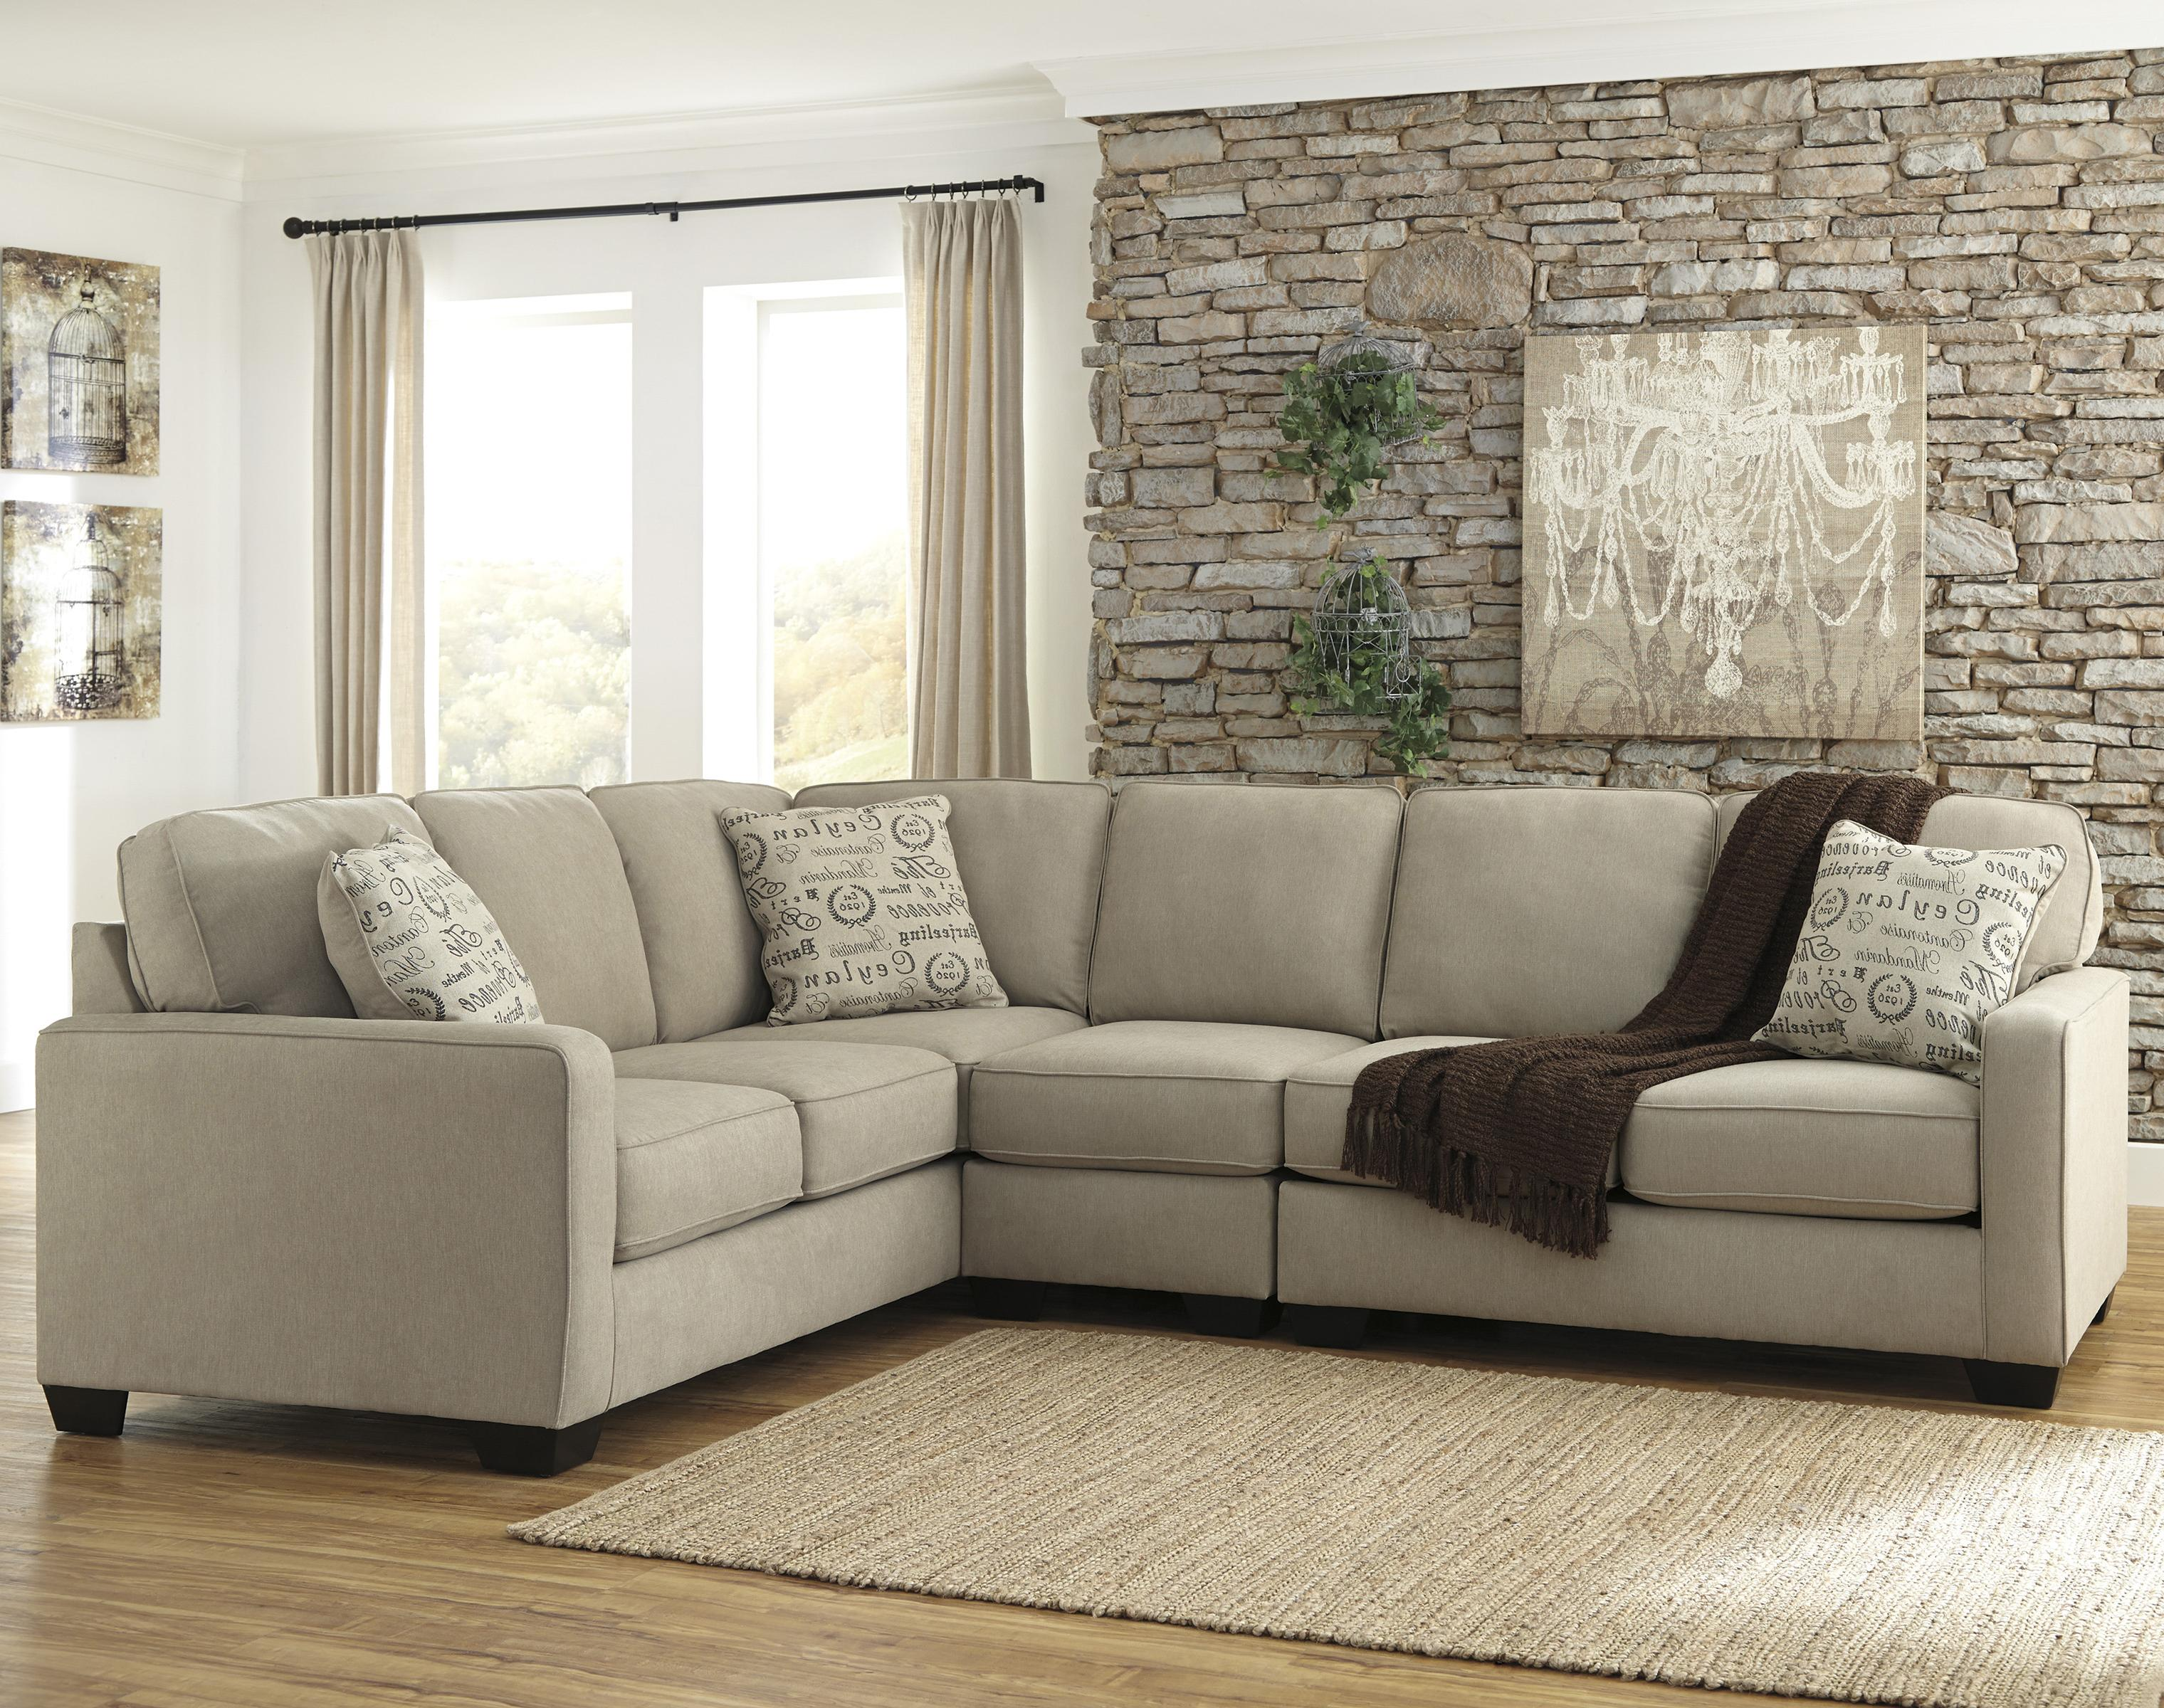 Alenya - Quartz 3-Piece Sectional with Right Loveseat by Signature Design by Ashley at Suburban Furniture